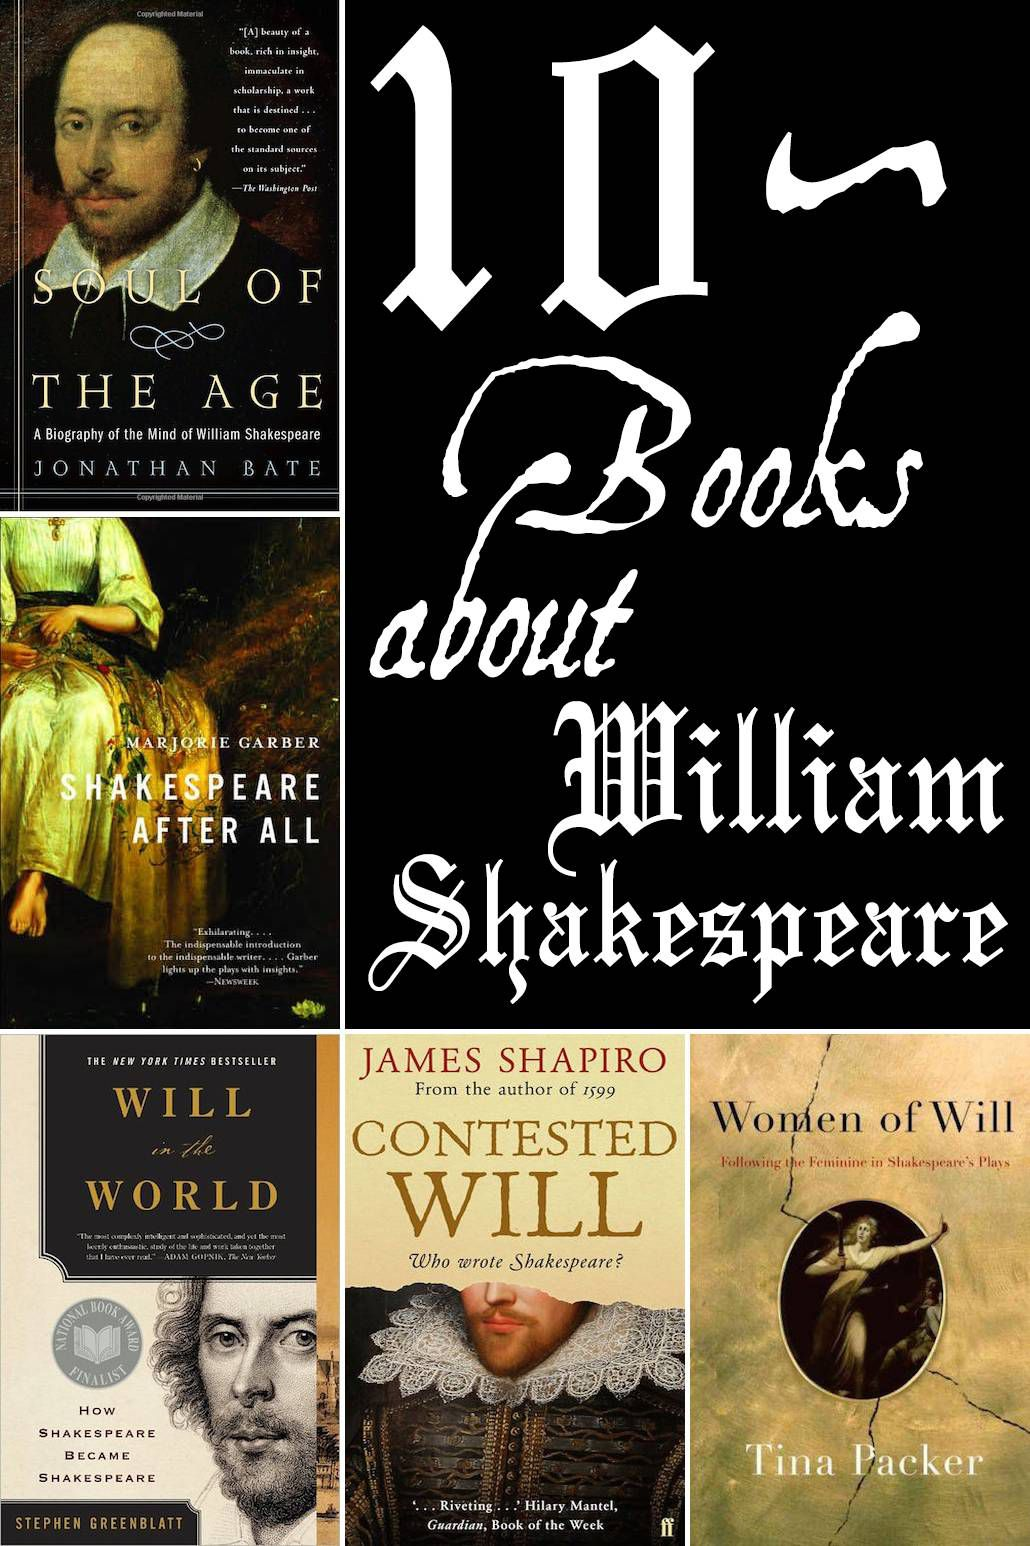 10 books about Shakespeare's life, work, and legacy.